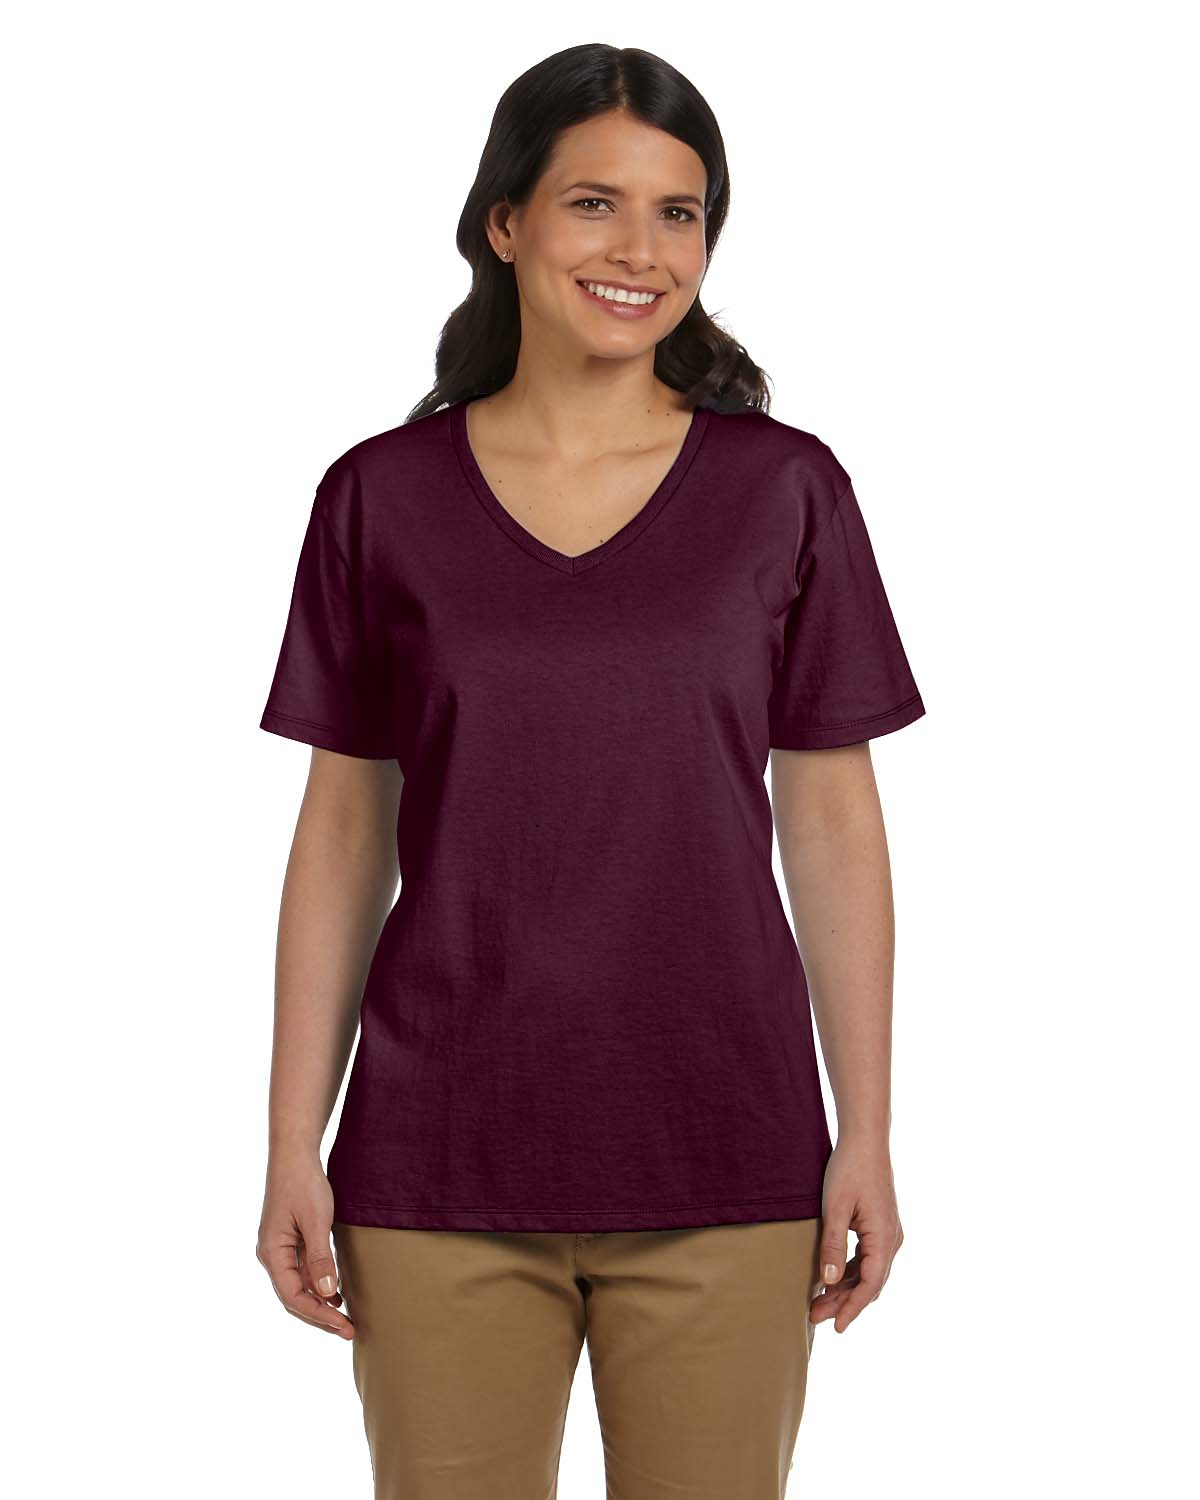 Hanes Ladies 5.2 Oz. ComfortSoft® V-Neck Cotton T-Shirt